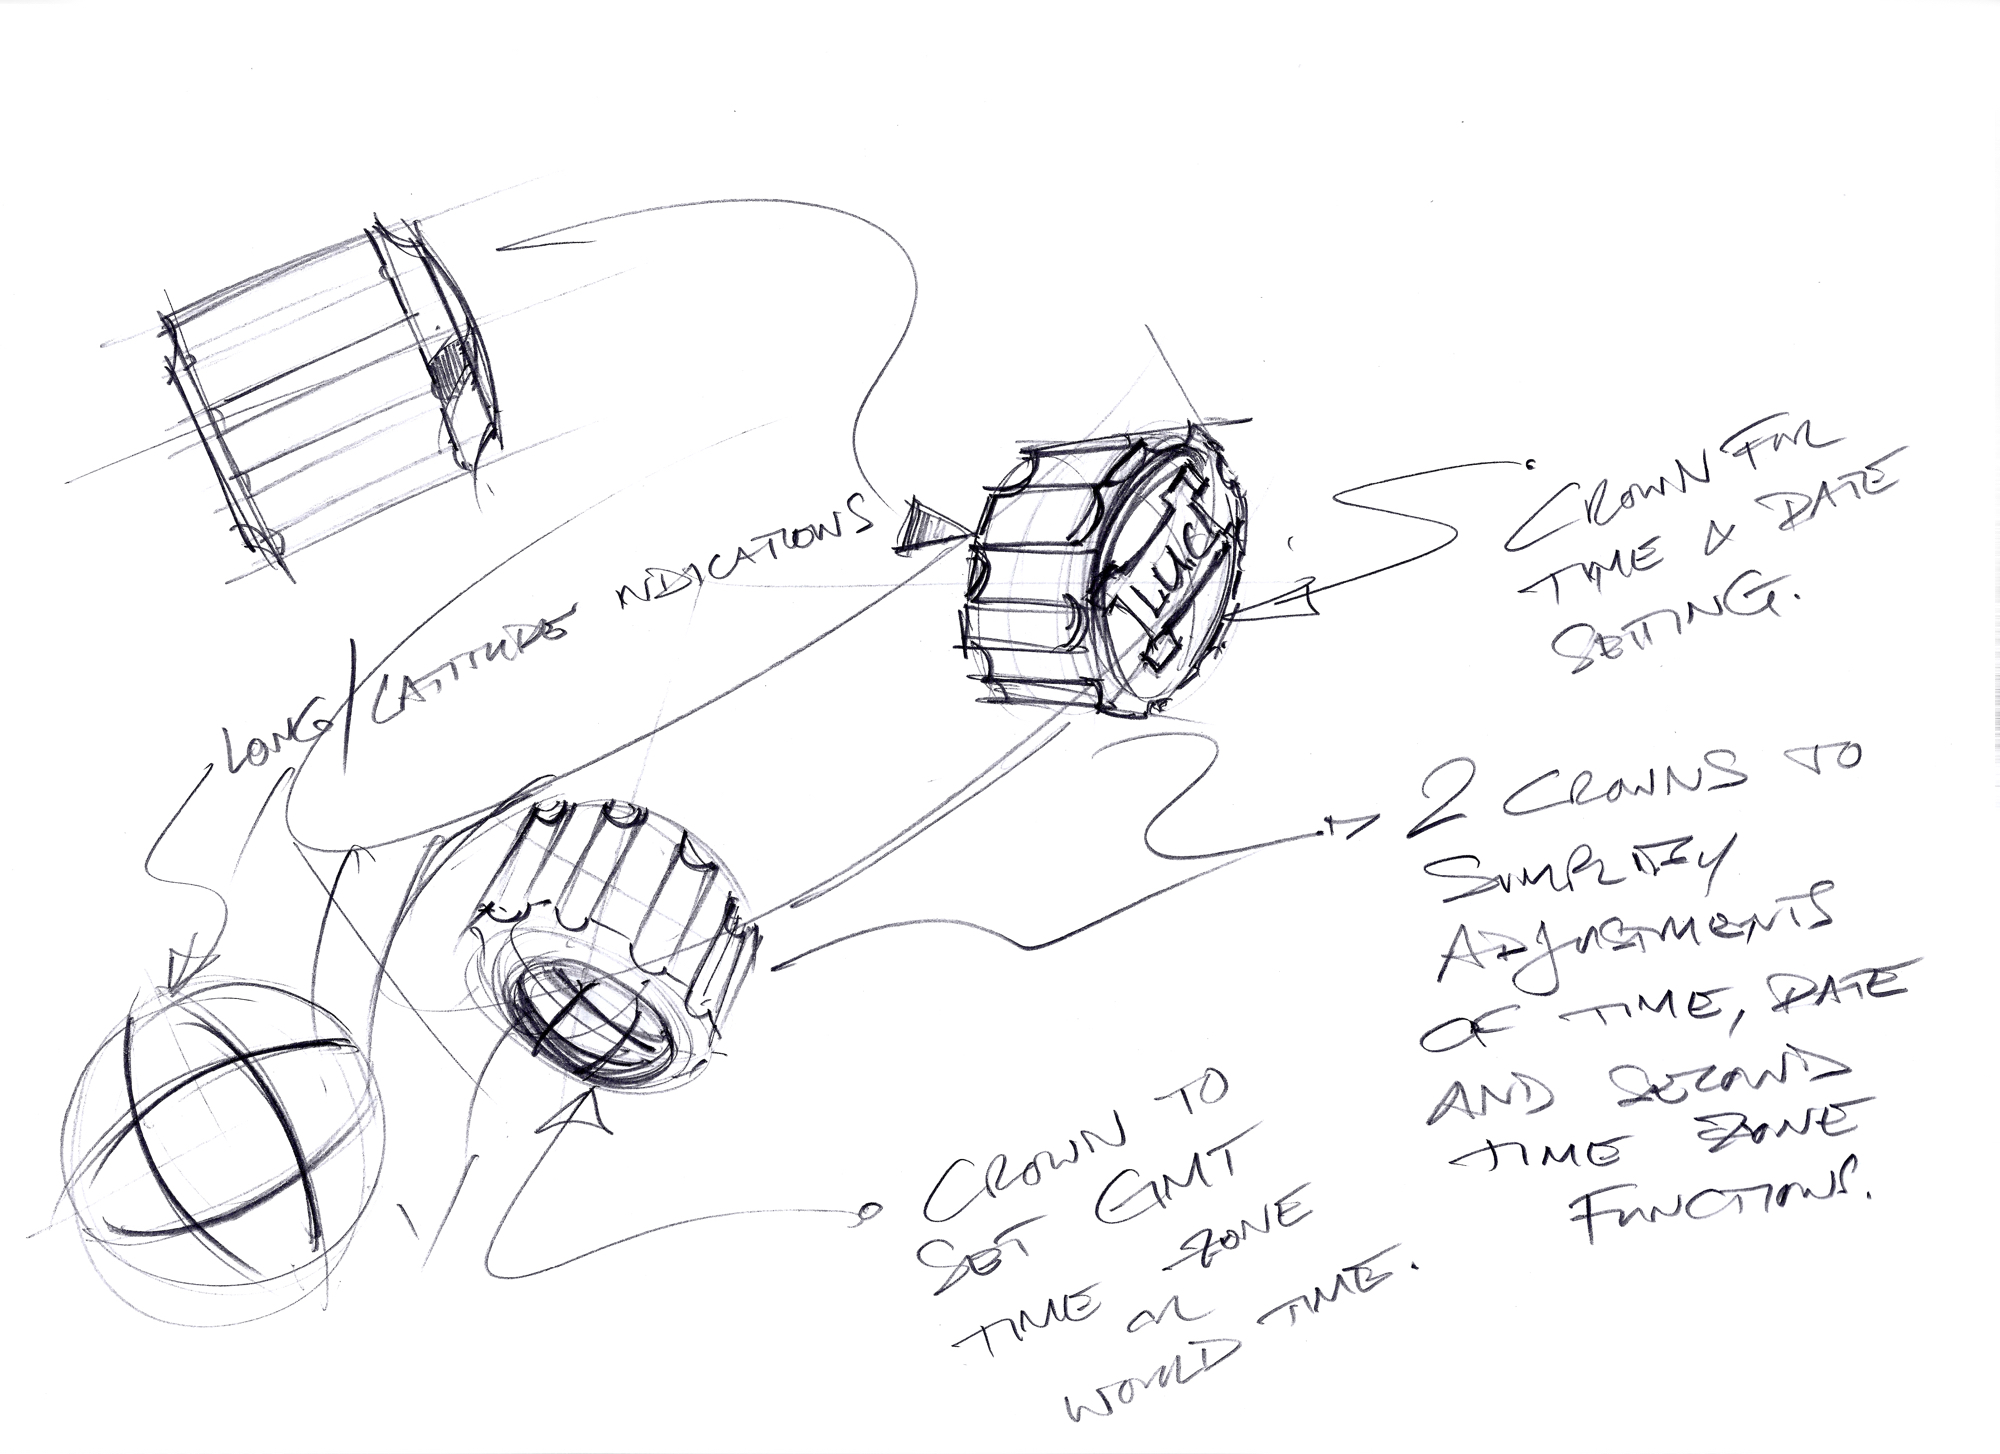 l-u-c-gmt-one-sketch-2-crowns-and-setting